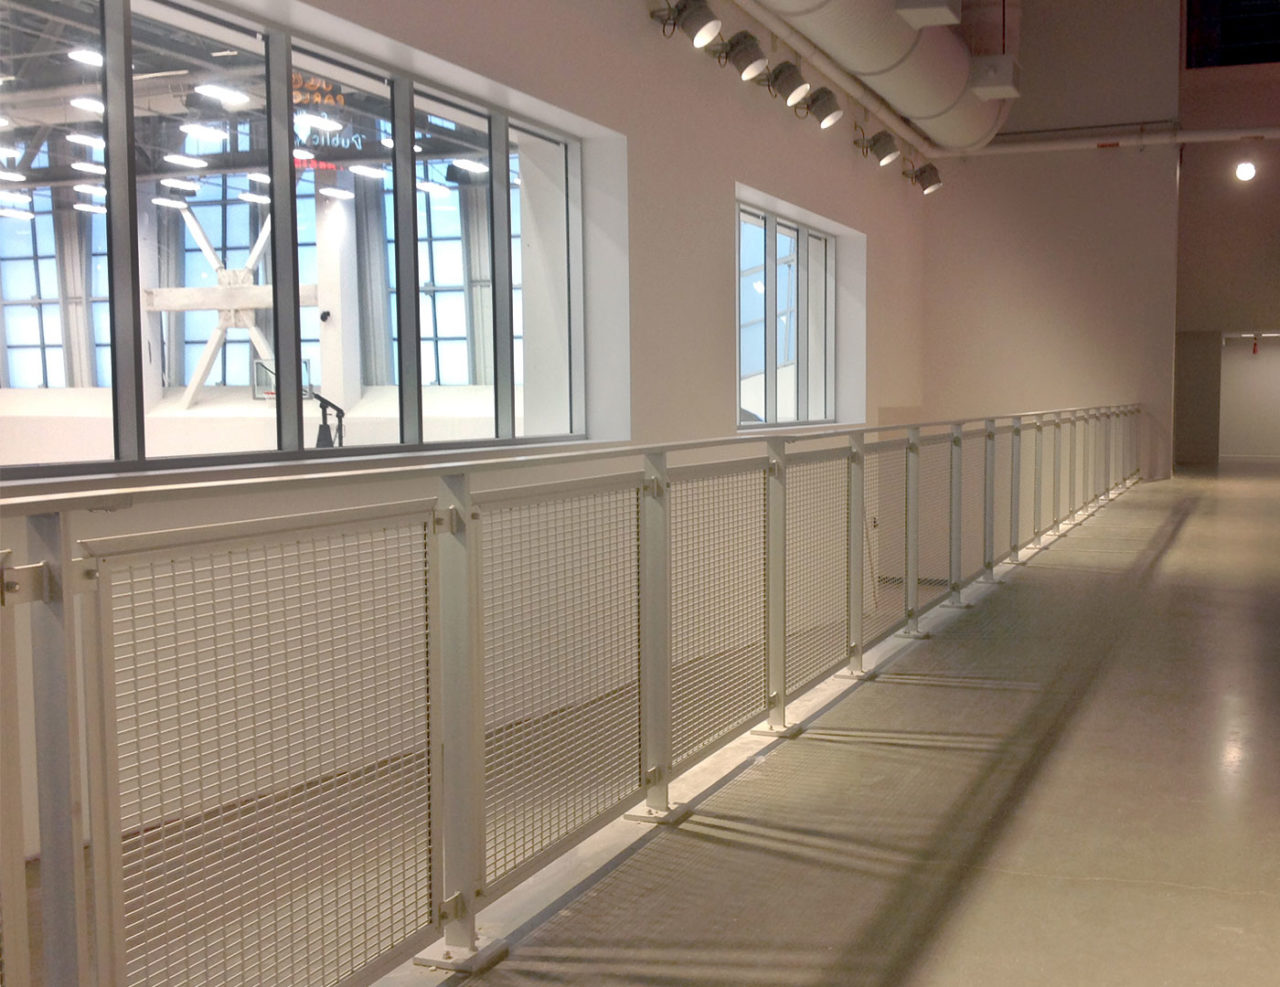 Gridguard mesh railing at Golden 1 Center practice facility